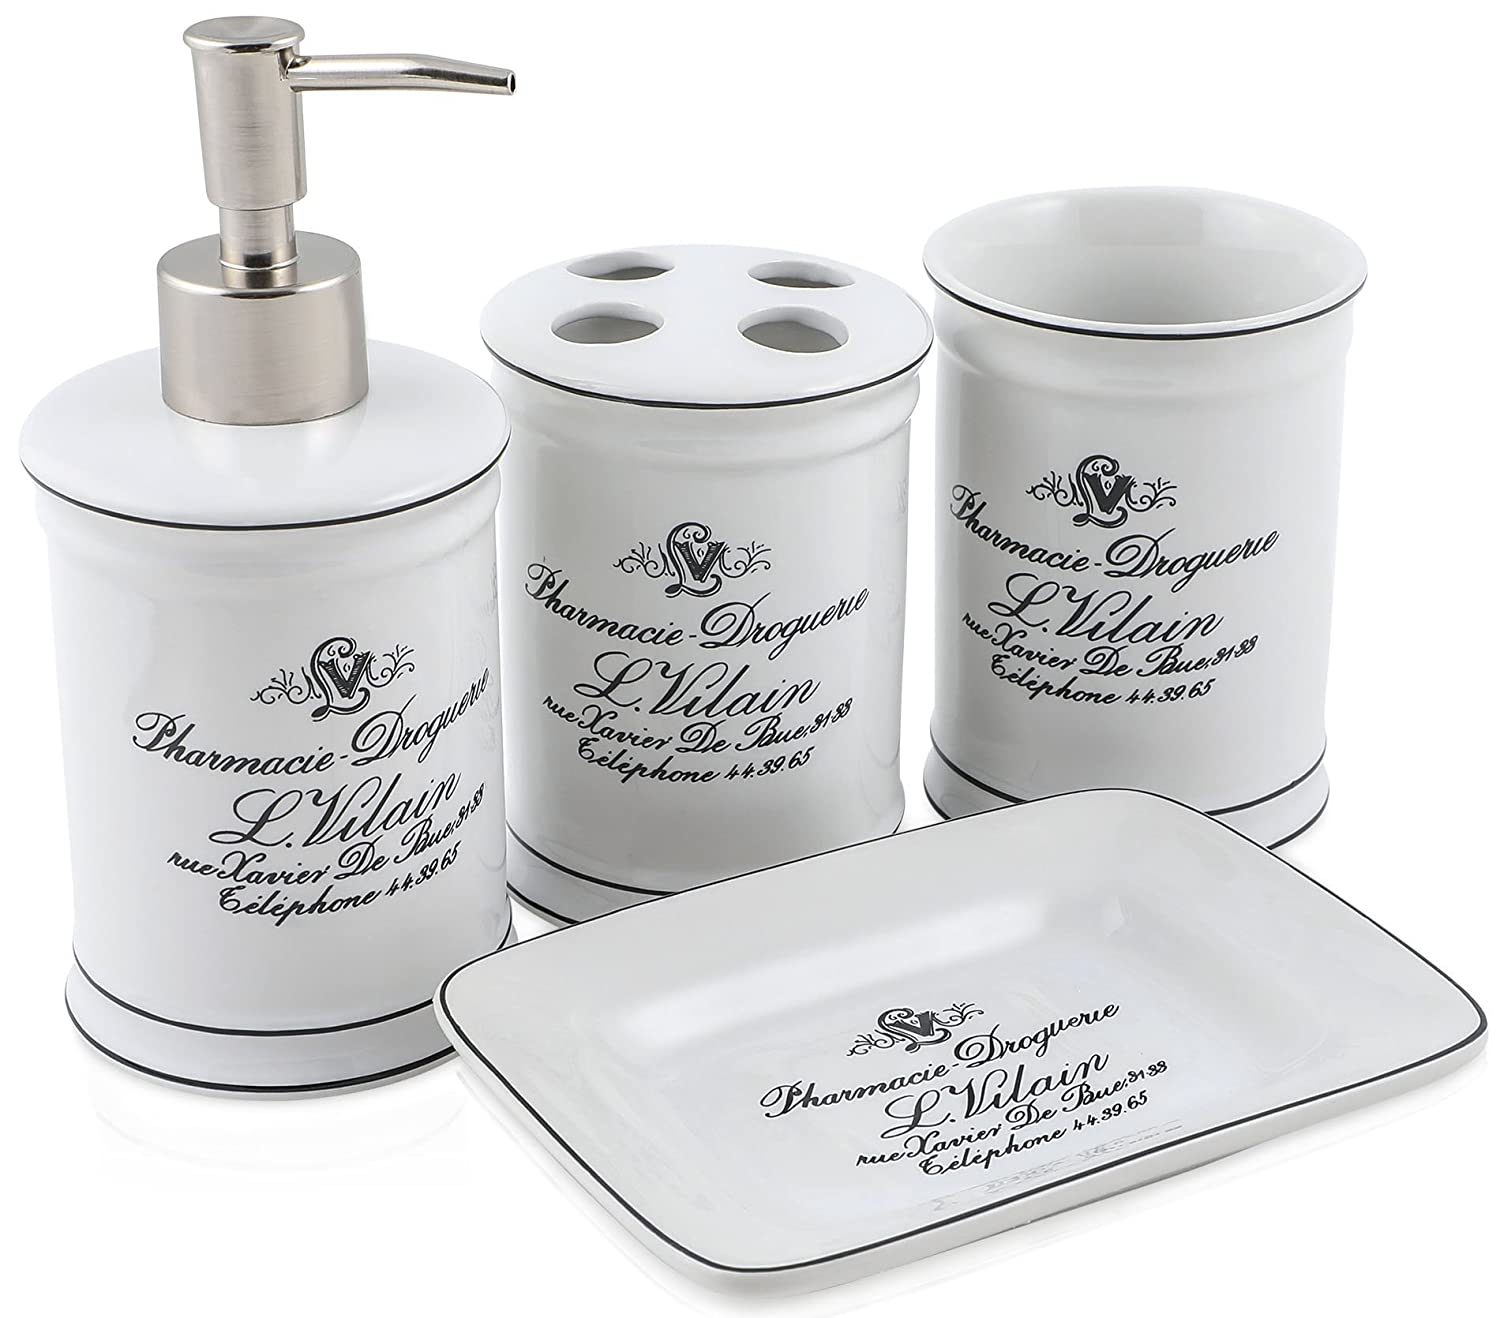 Vintage Chic Bathroom Accessory Set. Classic French Provincial 4 Piece Bath Gift Set includes liquid soap/lotion dispenser, toothbrush holder, tumbler, and soap dish. Decor D' azur